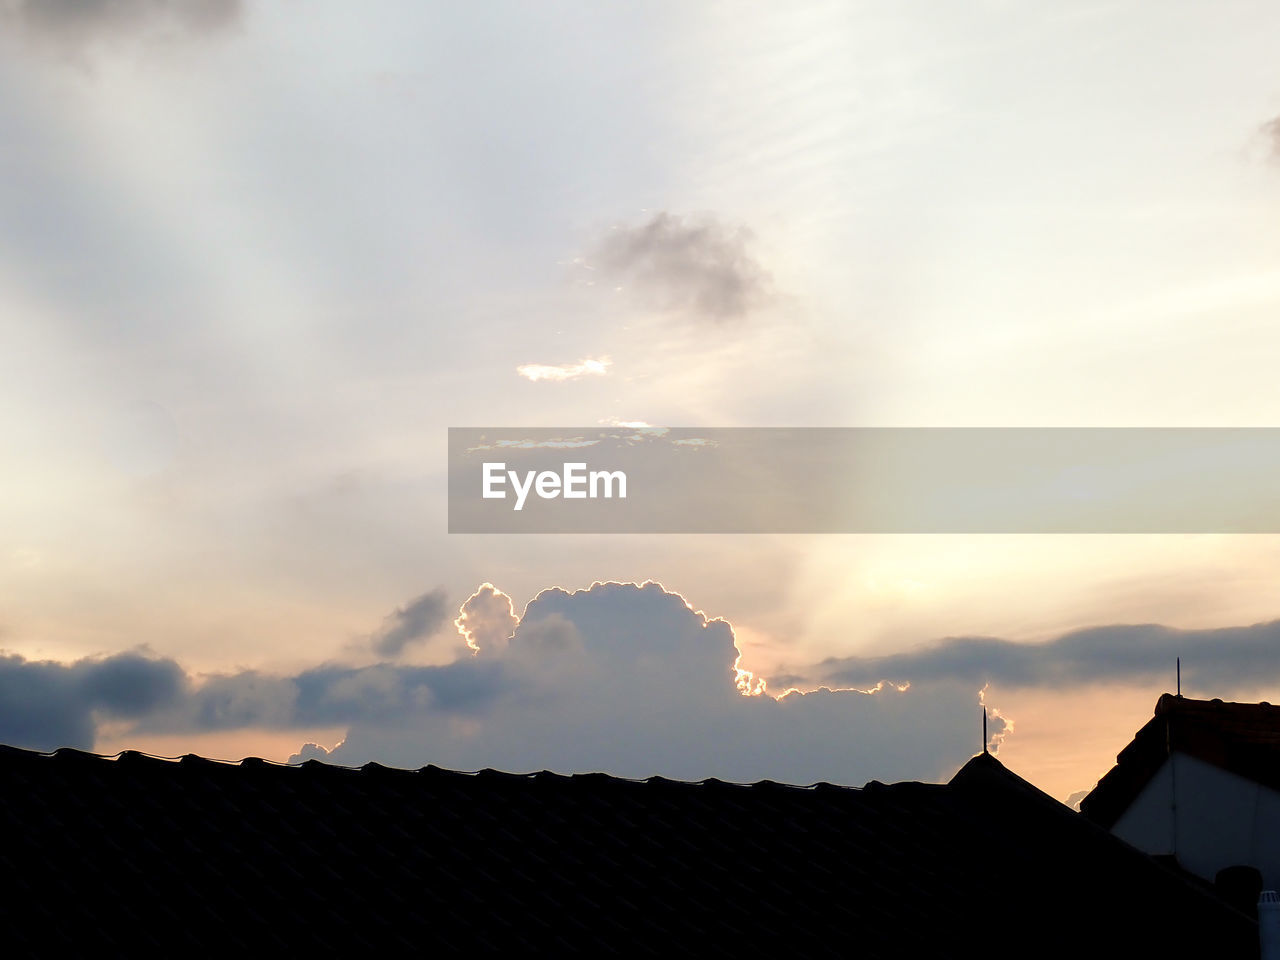 sky, cloud - sky, architecture, sunset, roof, built structure, building, building exterior, house, nature, silhouette, roof tile, no people, residential district, outdoors, high section, beauty in nature, scenics - nature, dusk, sunlight